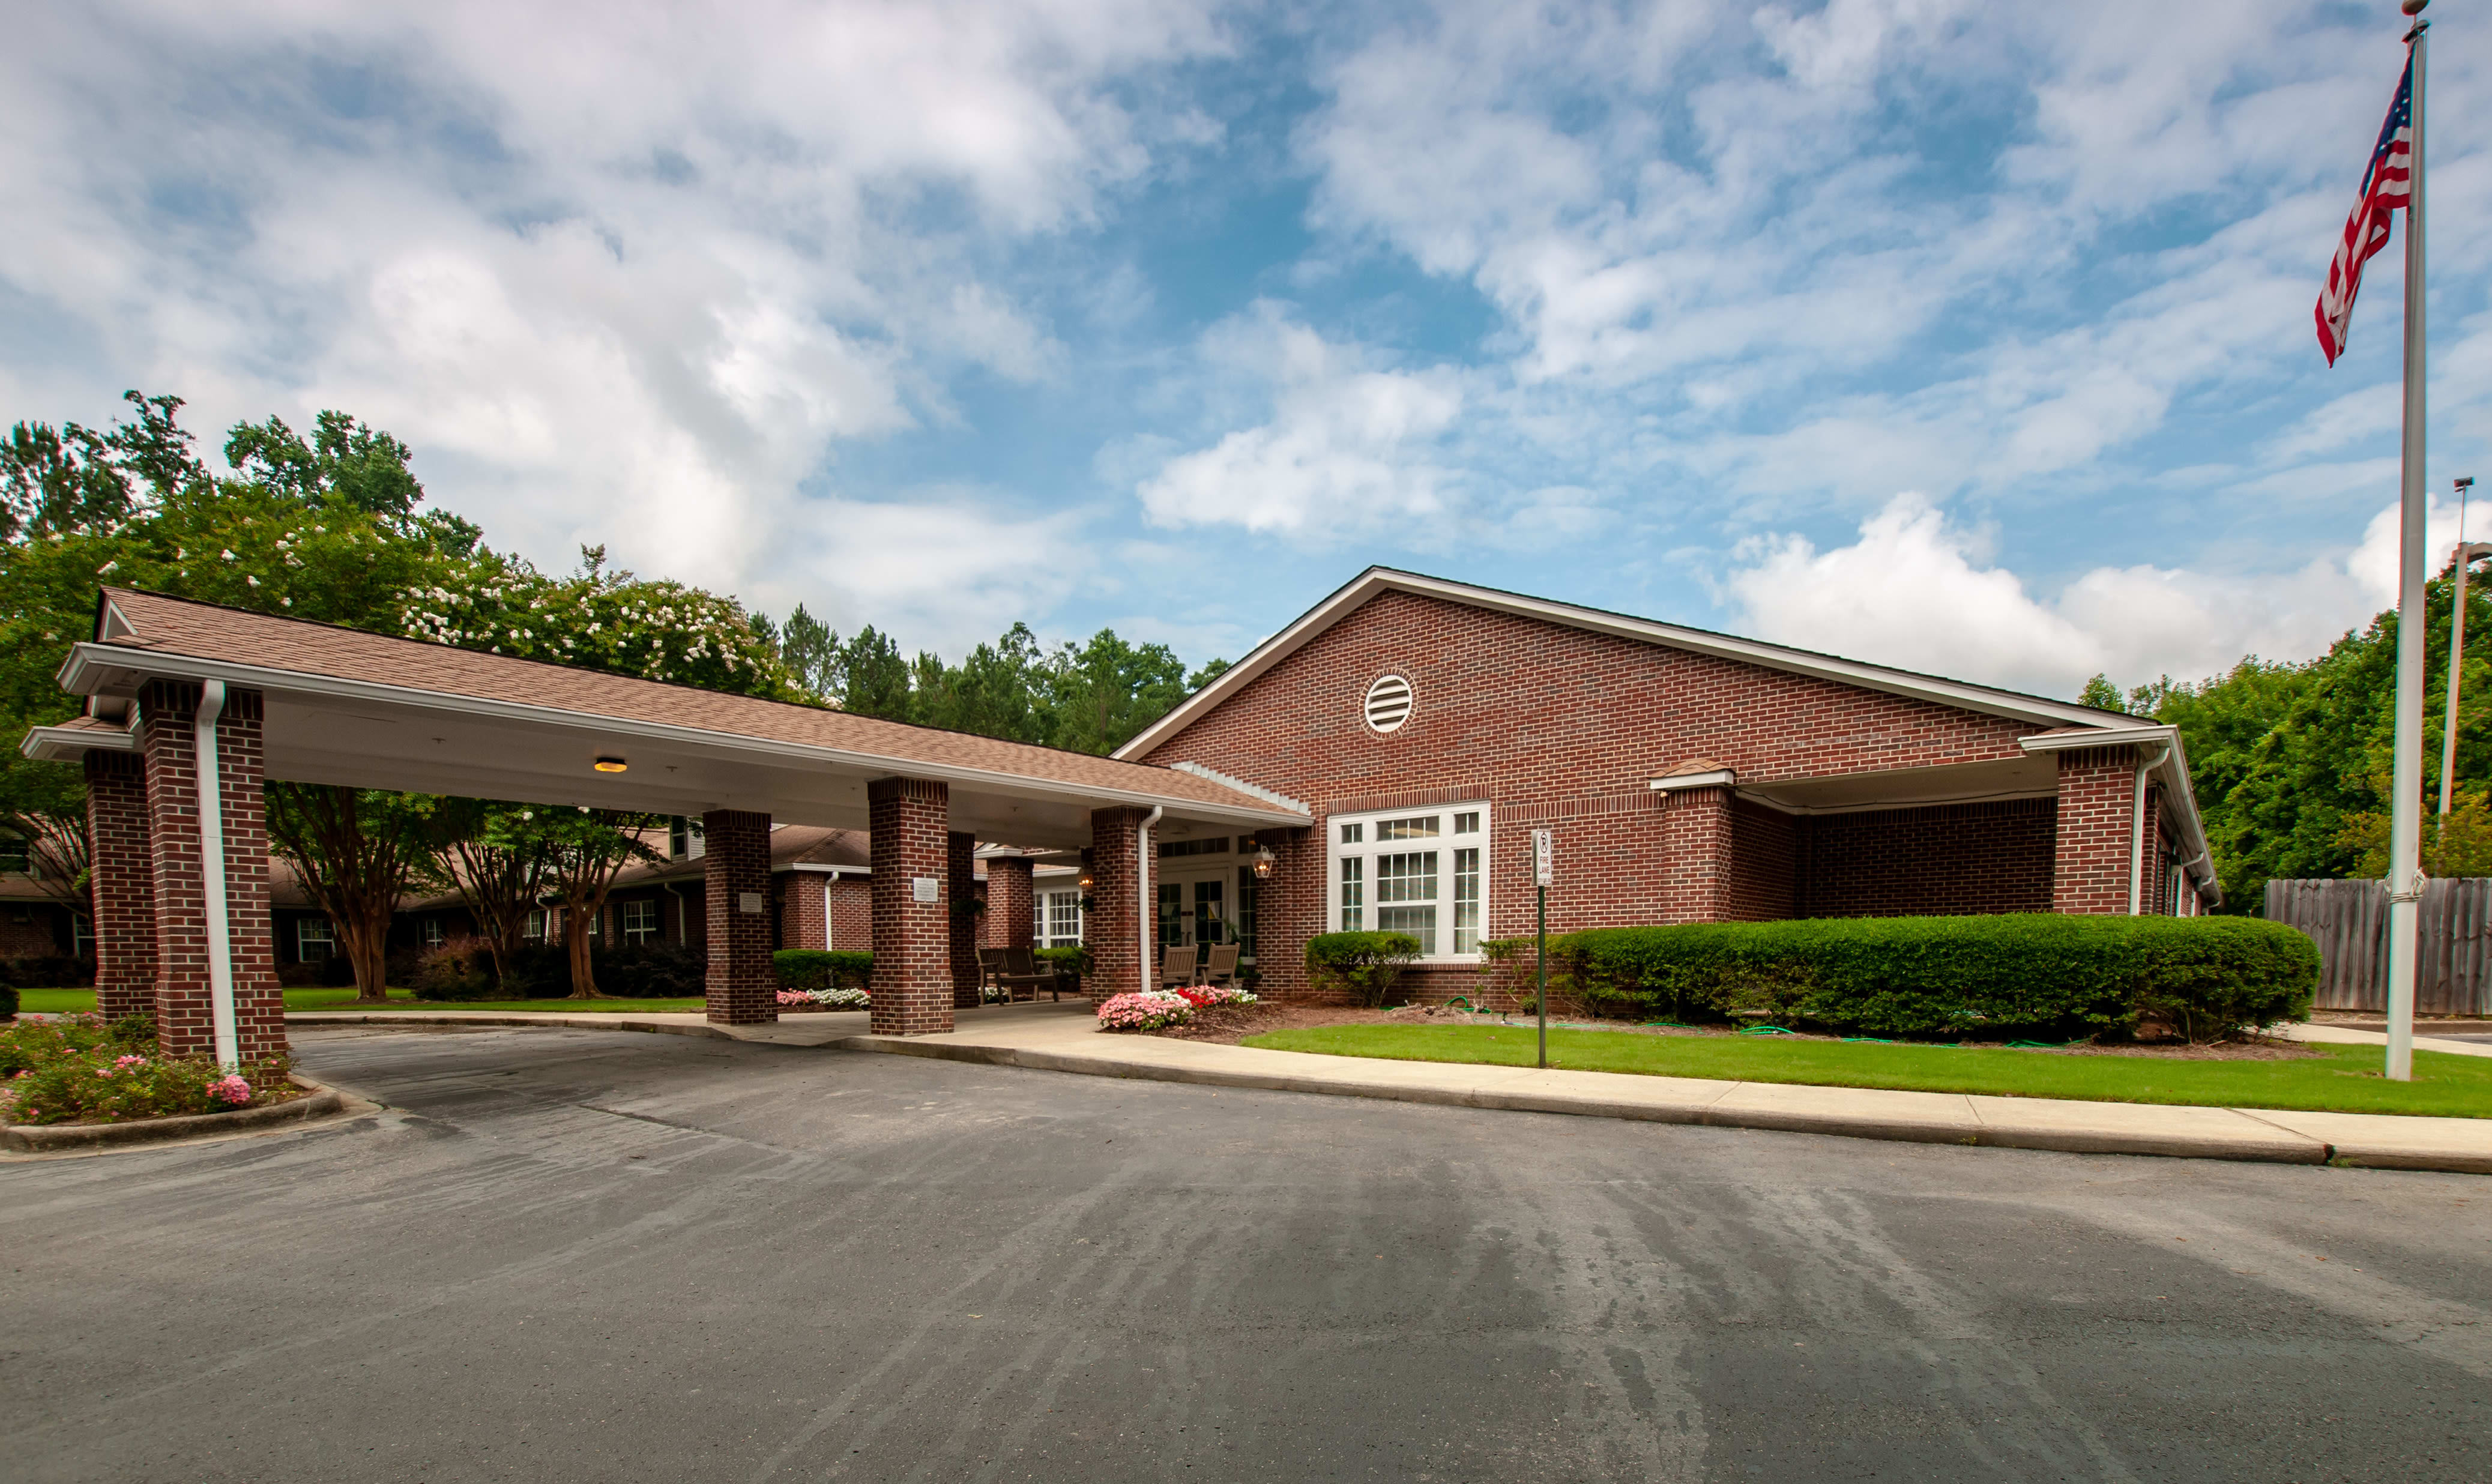 Hoover senior living has amazing care options